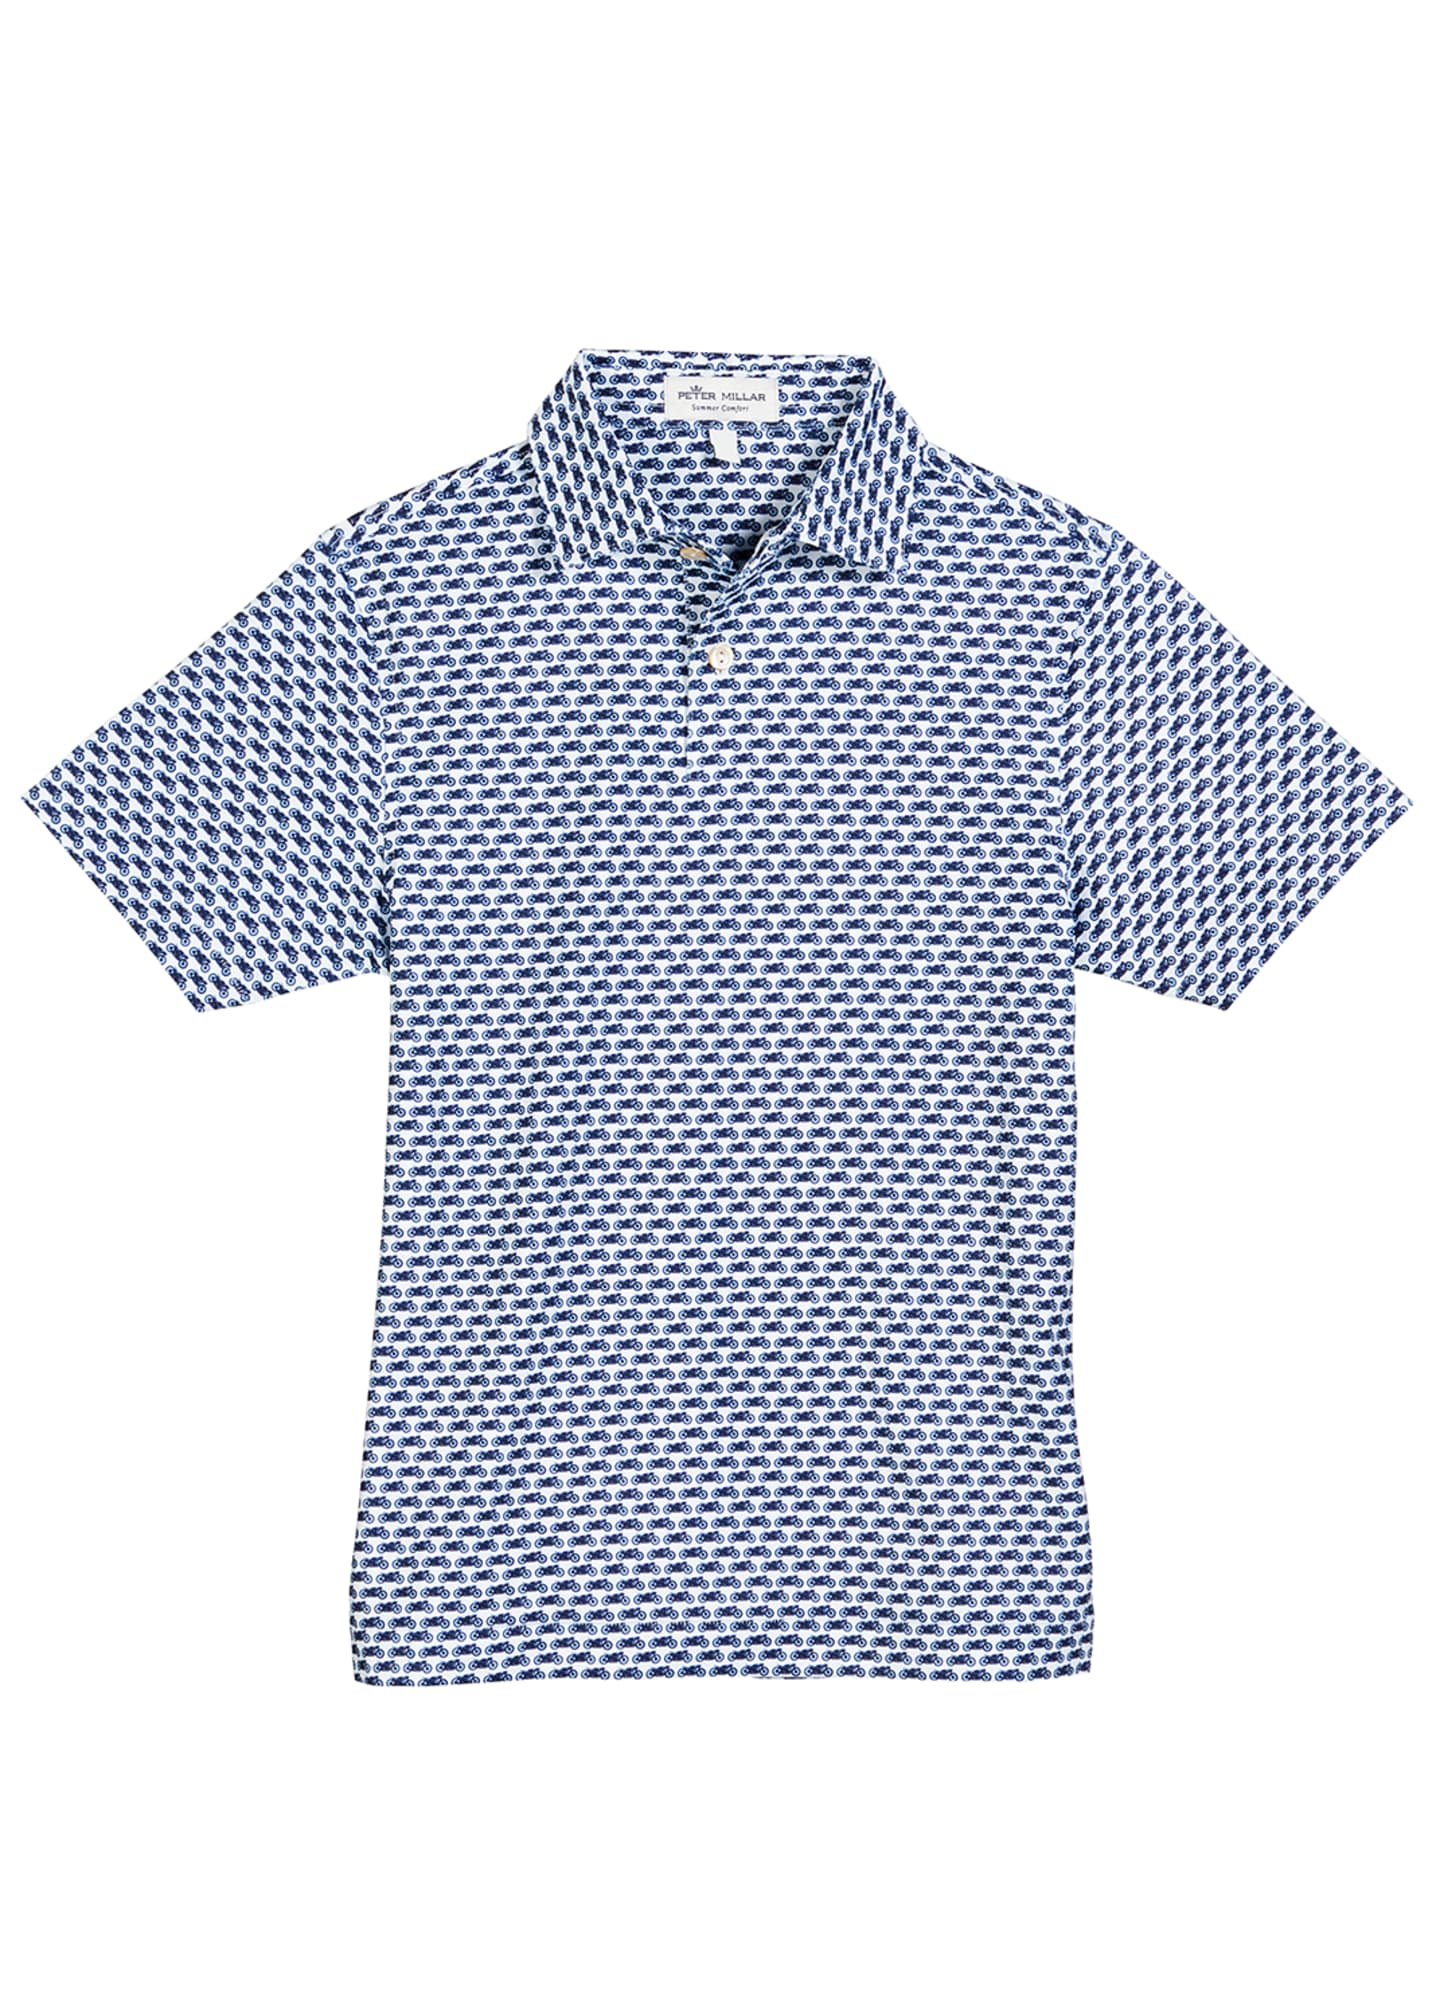 Peter Millar Stretch Jersey Motorcycle-Print Polo Shirt, Size